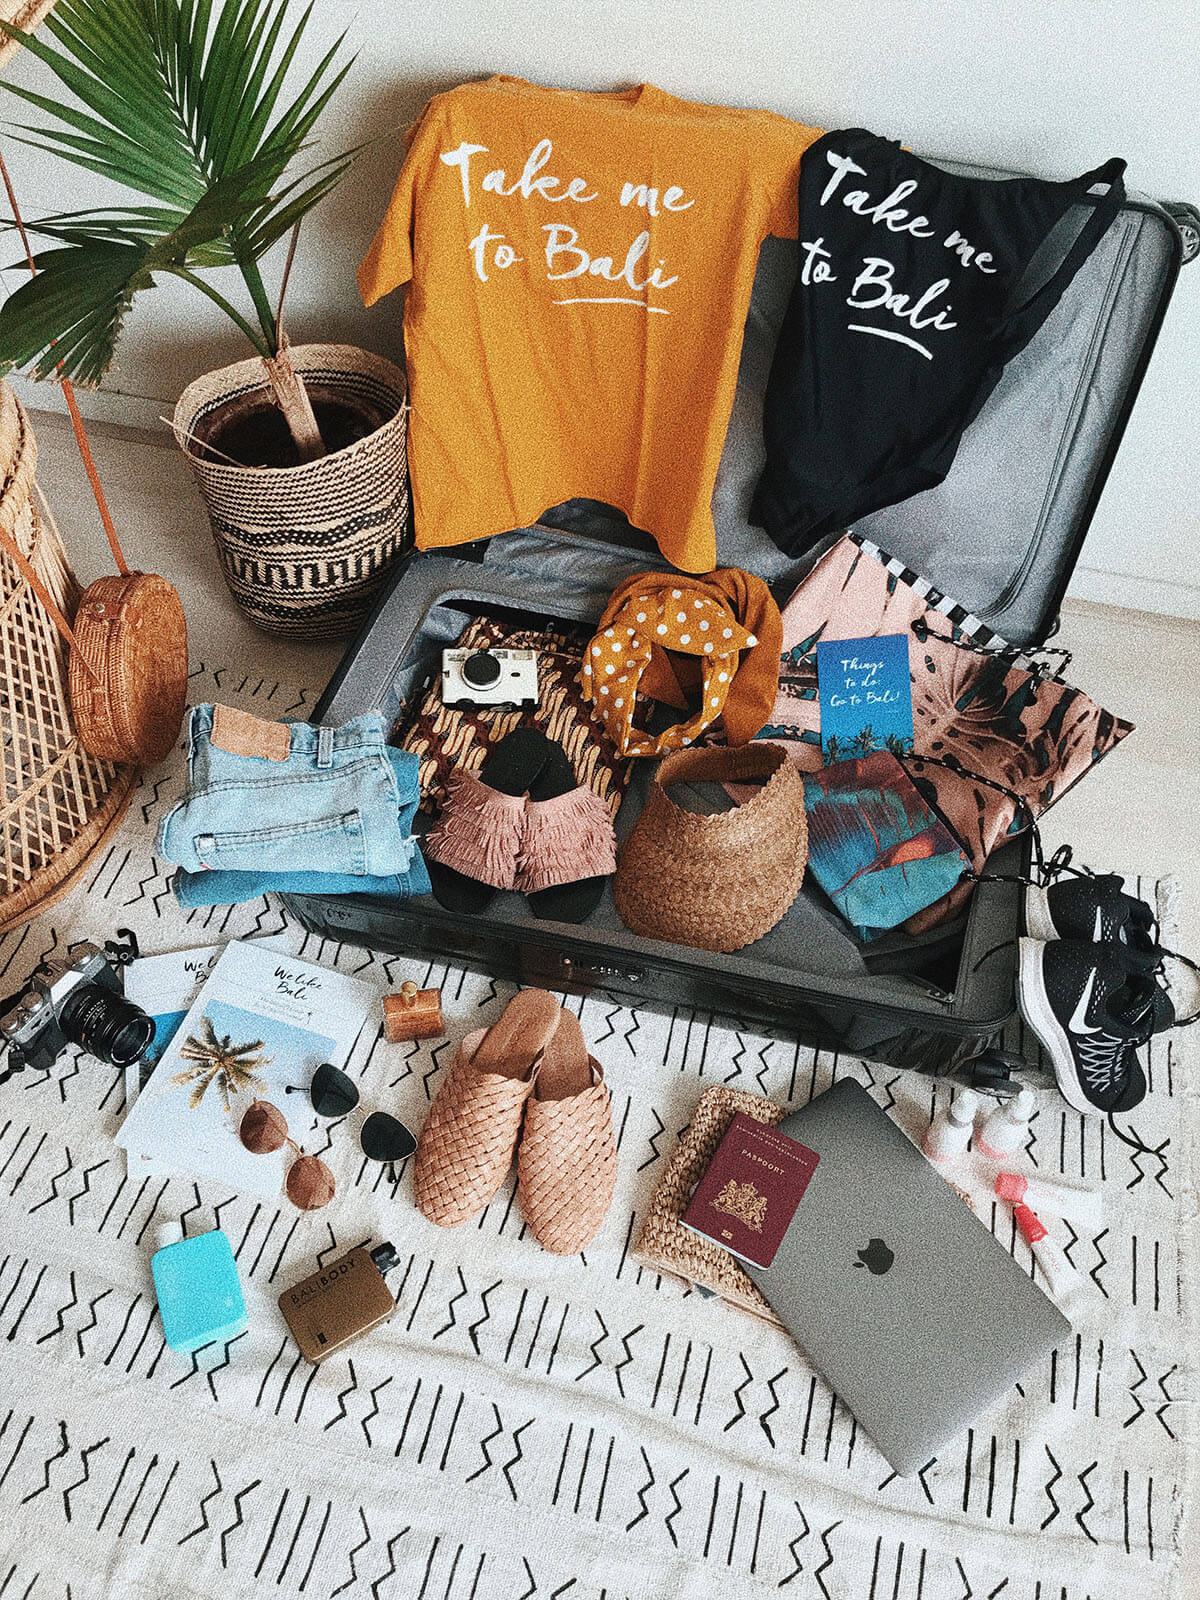 bali packing list8